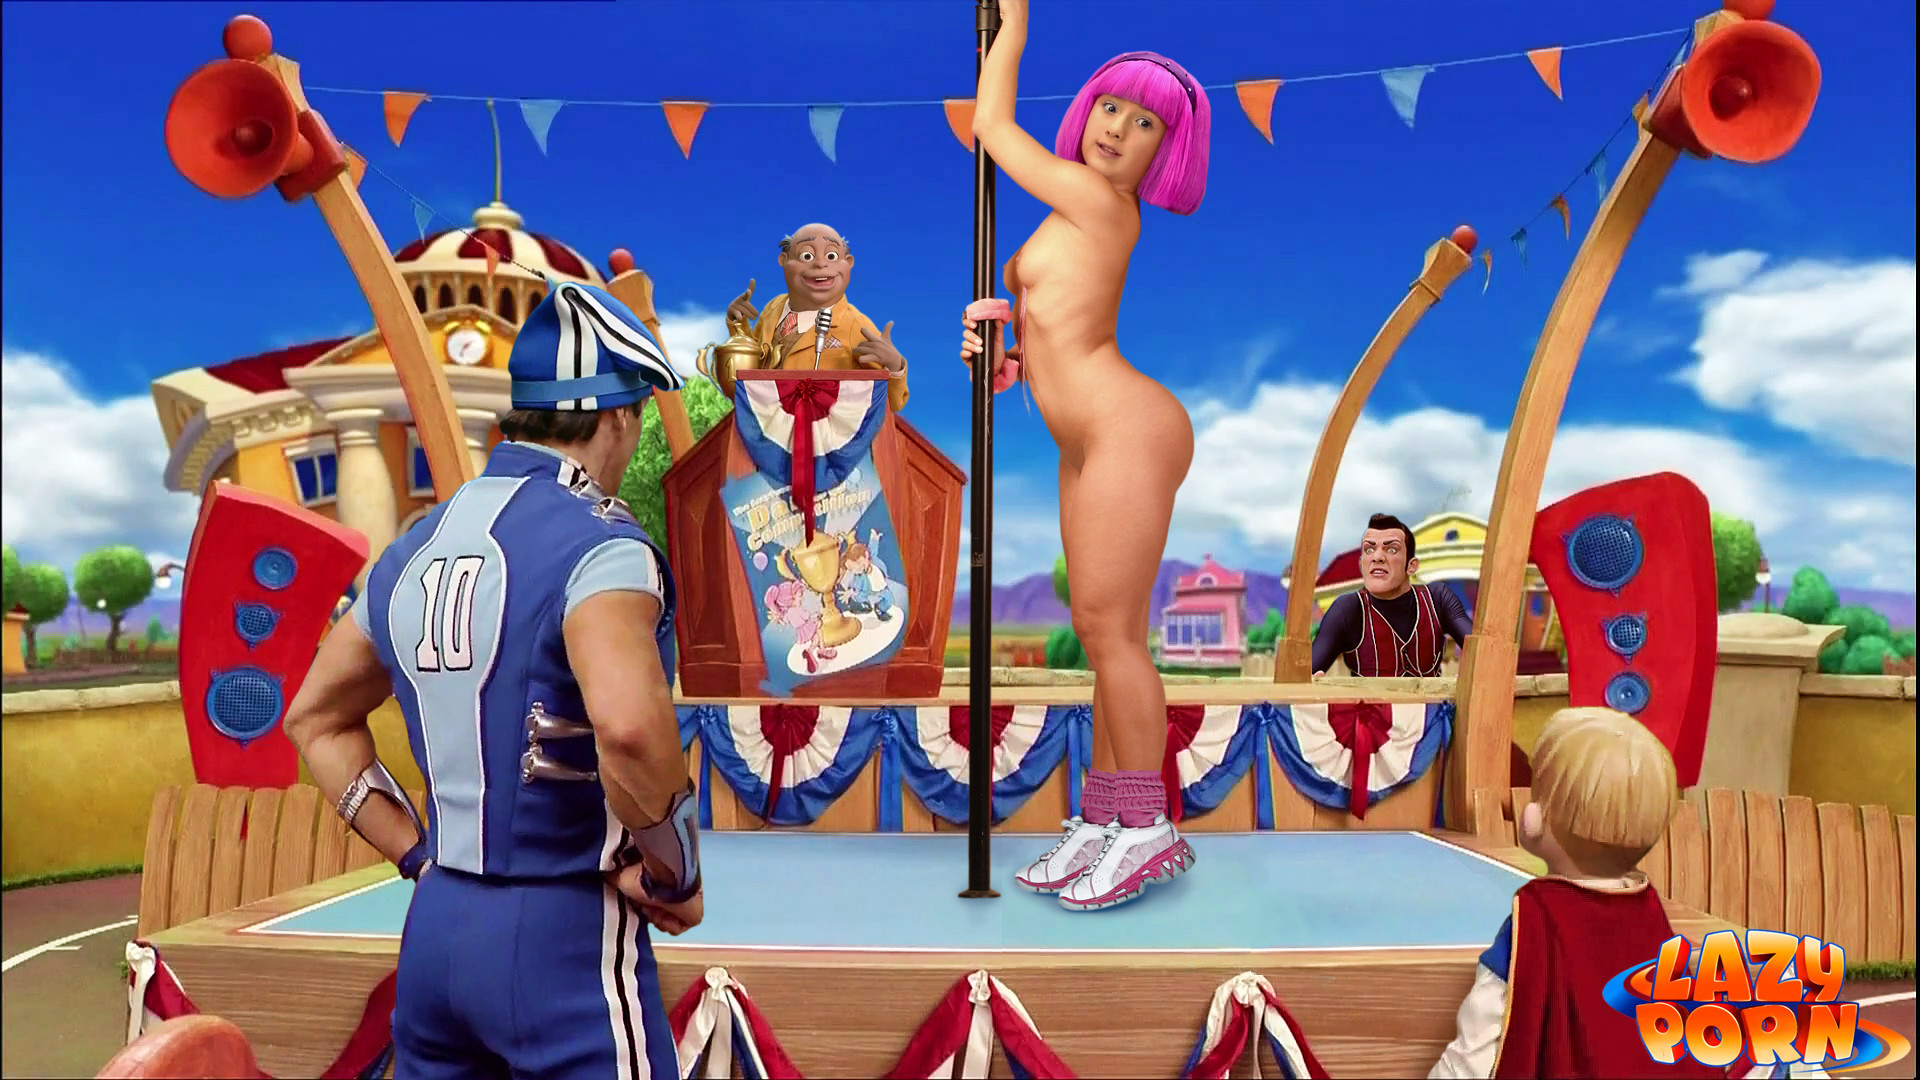 stephanie naked lazy town